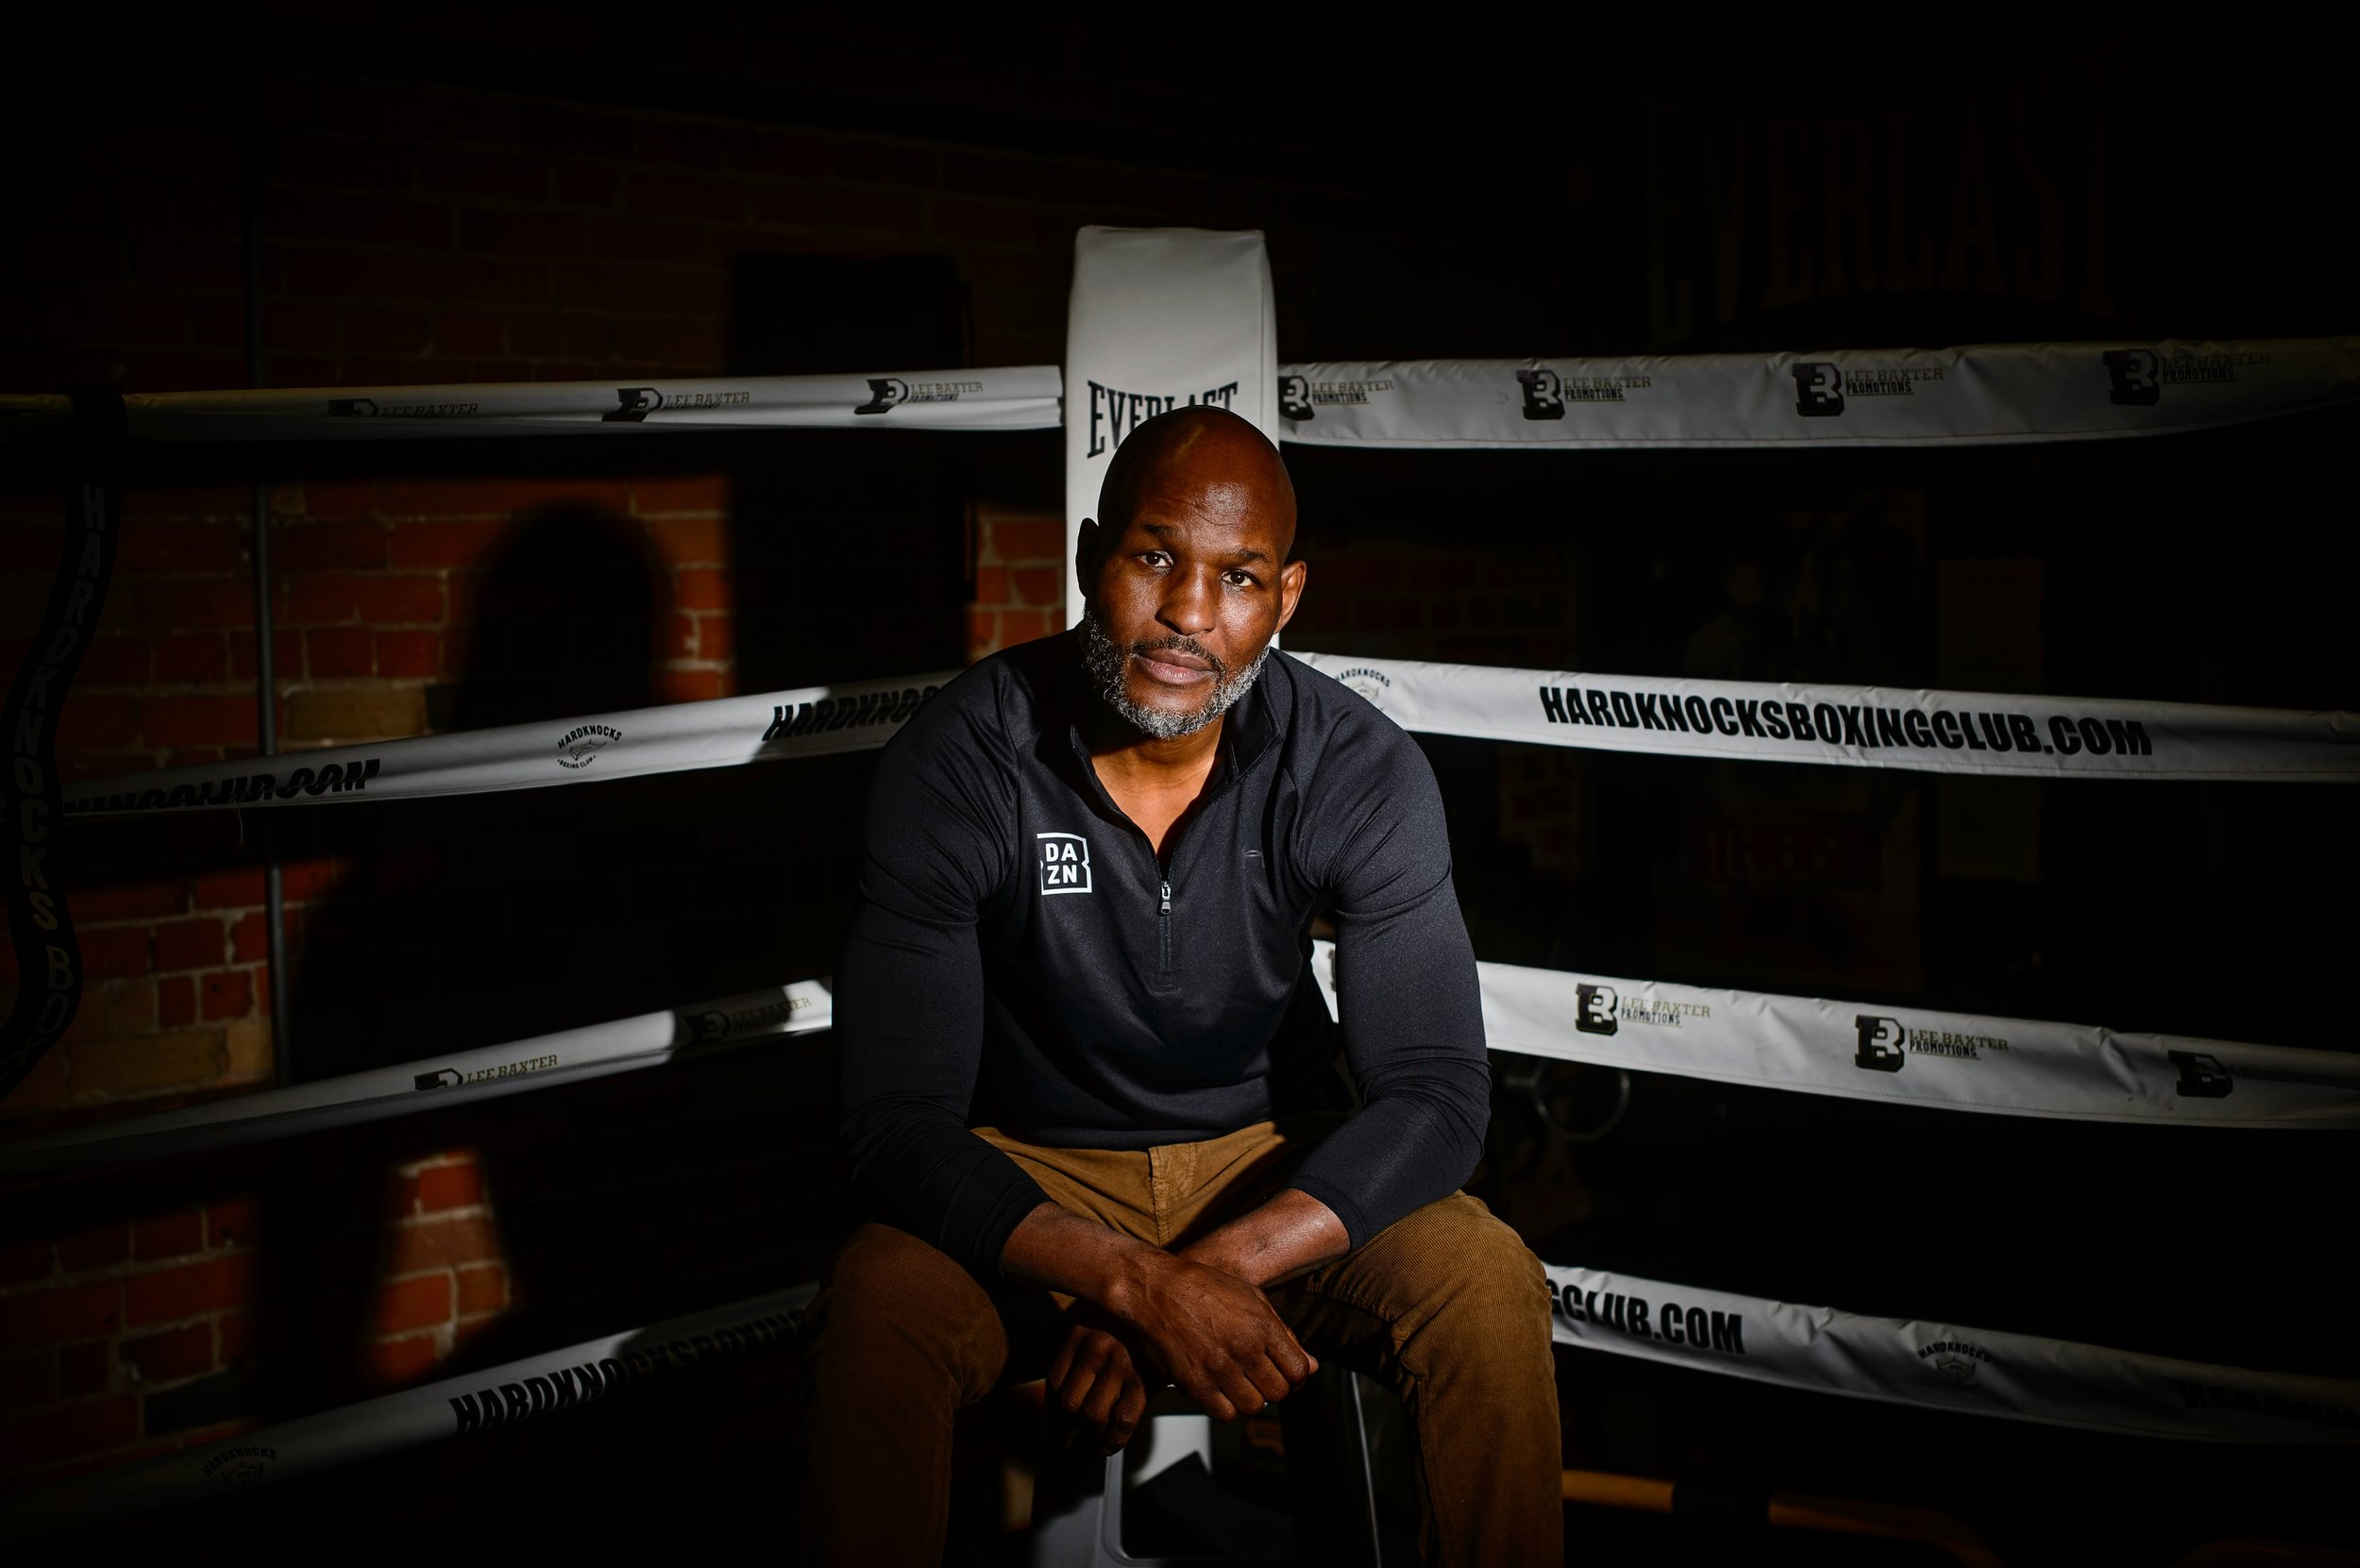 Former boxing World Champion Bernard Hopkins poses for a portrait at Hardknocks Boxing Gym in Toronto, Ont. on December 5, 2018.